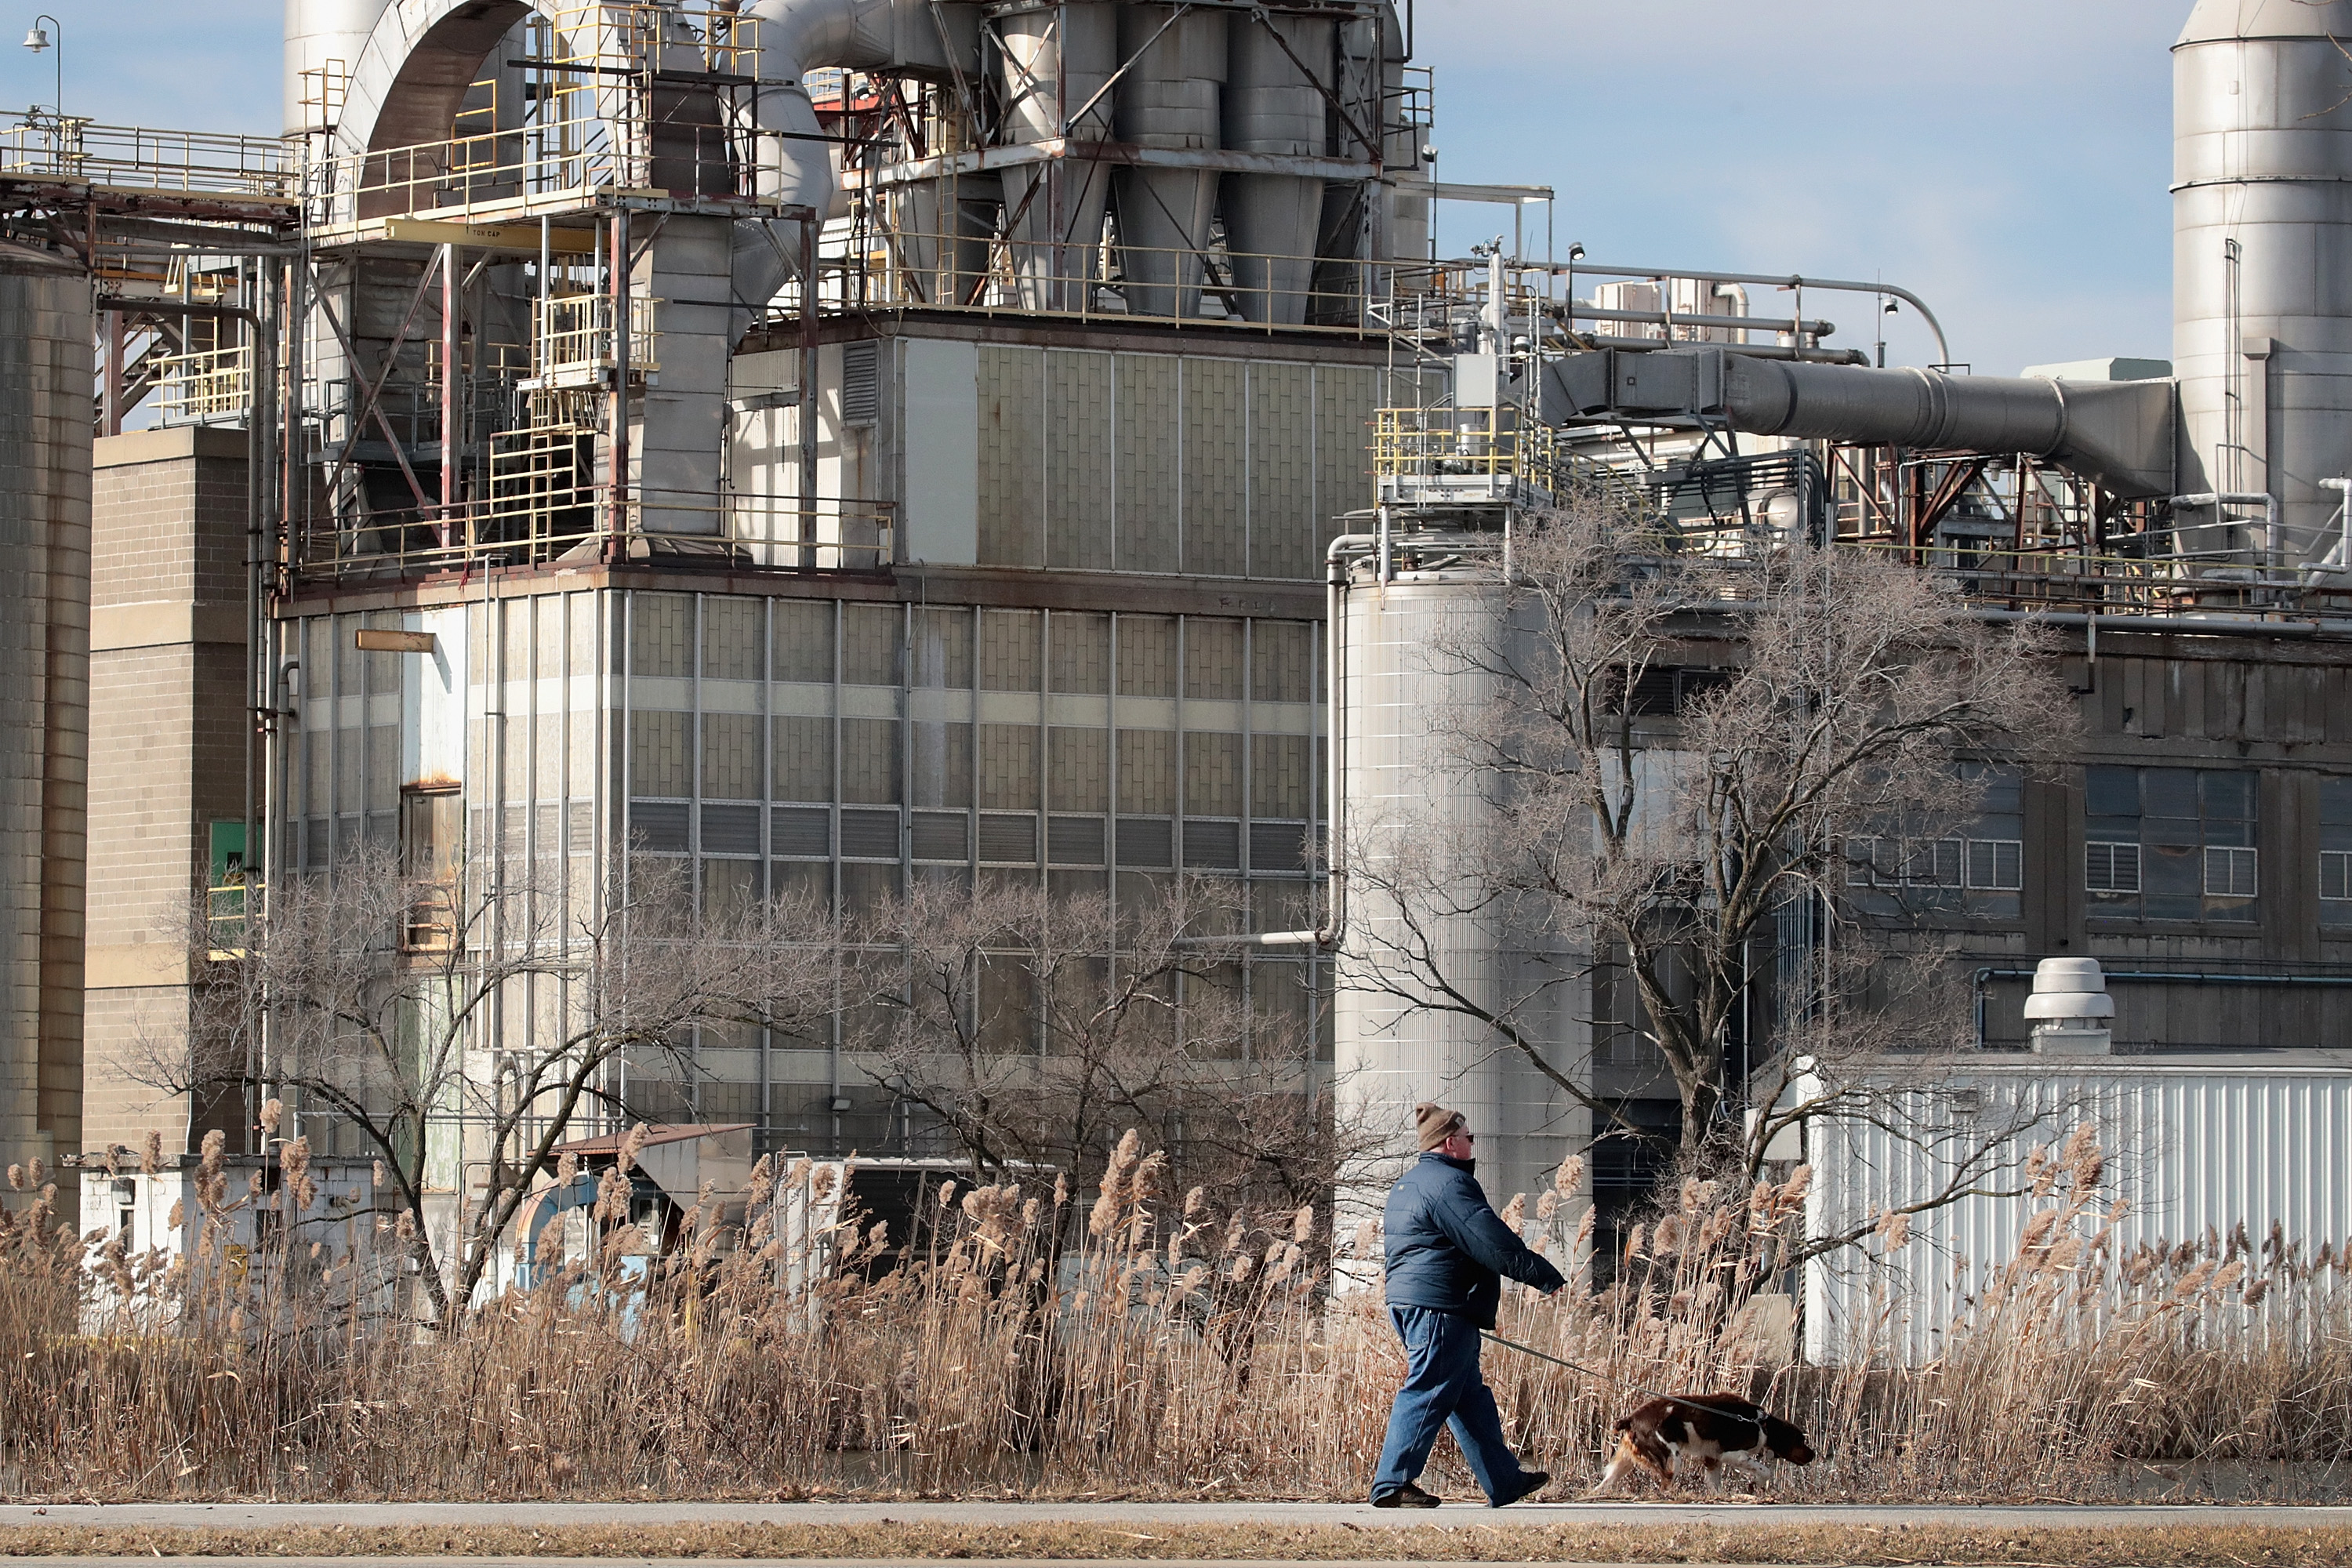 A Cargill plant dominates the landscape along Wolf Lake on the edge of Forsythe Park on January 08, 2019 in Hammond, Indiana. According to a report from the Rhodium Group, carbon dioxide emissions in the United States rose 3.4 percent last year, the largest increase in eight years. A rise in emissions from factories, trucks and planes contributed heavily to this increase.